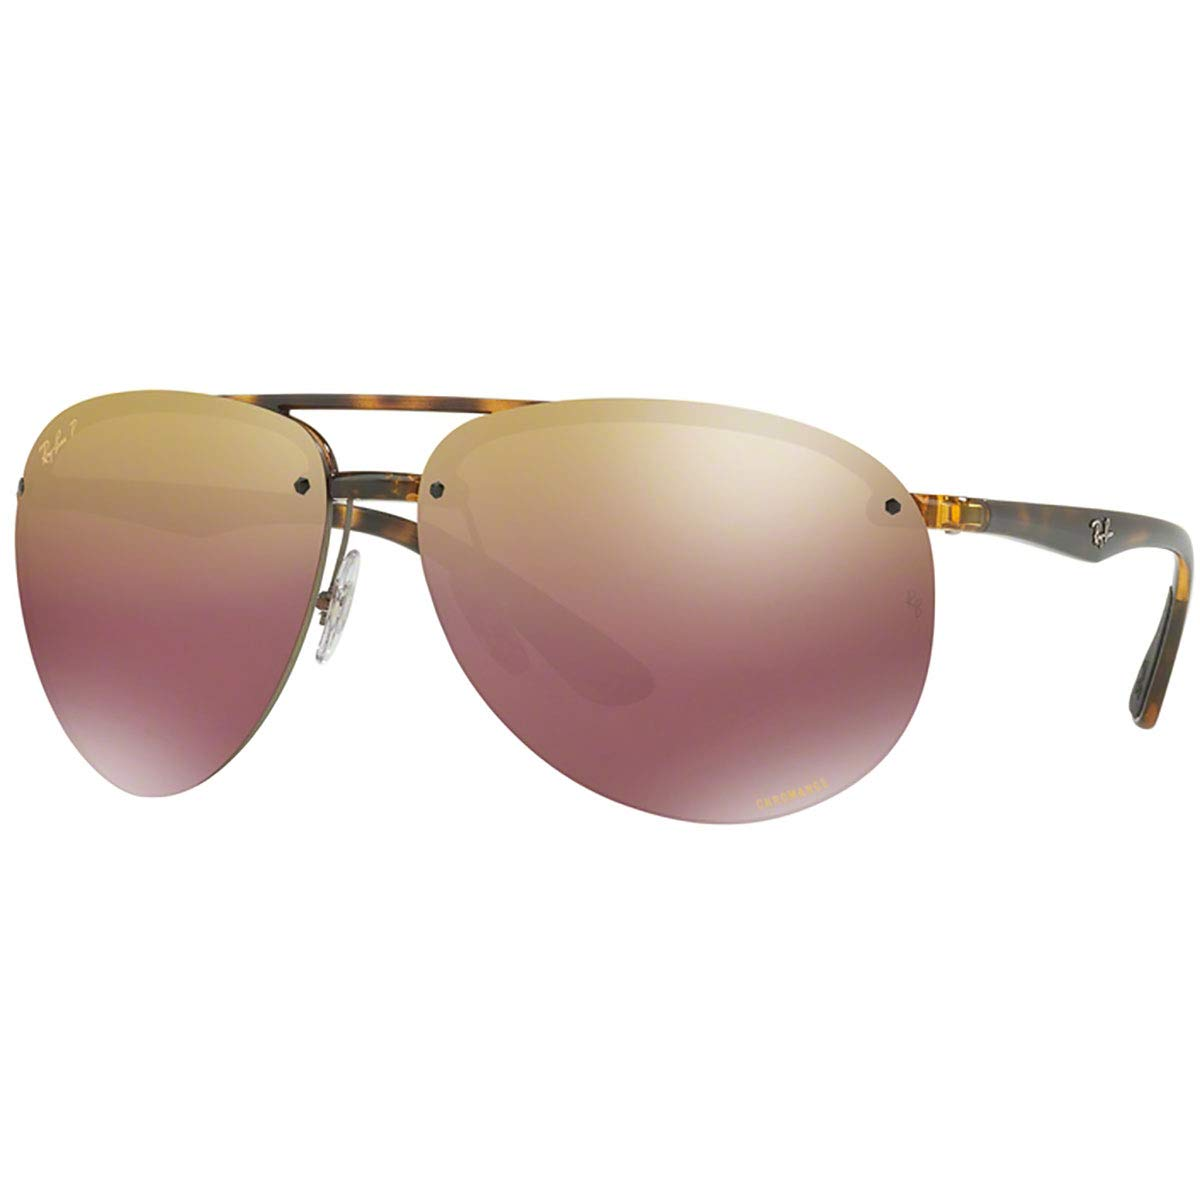 RAY-BAN Men's RB4293CH Chromance Mirrored Aviator Sunglasses, Havana/Polarized Purple Gradient Mirror, 65 mm by RAY-BAN